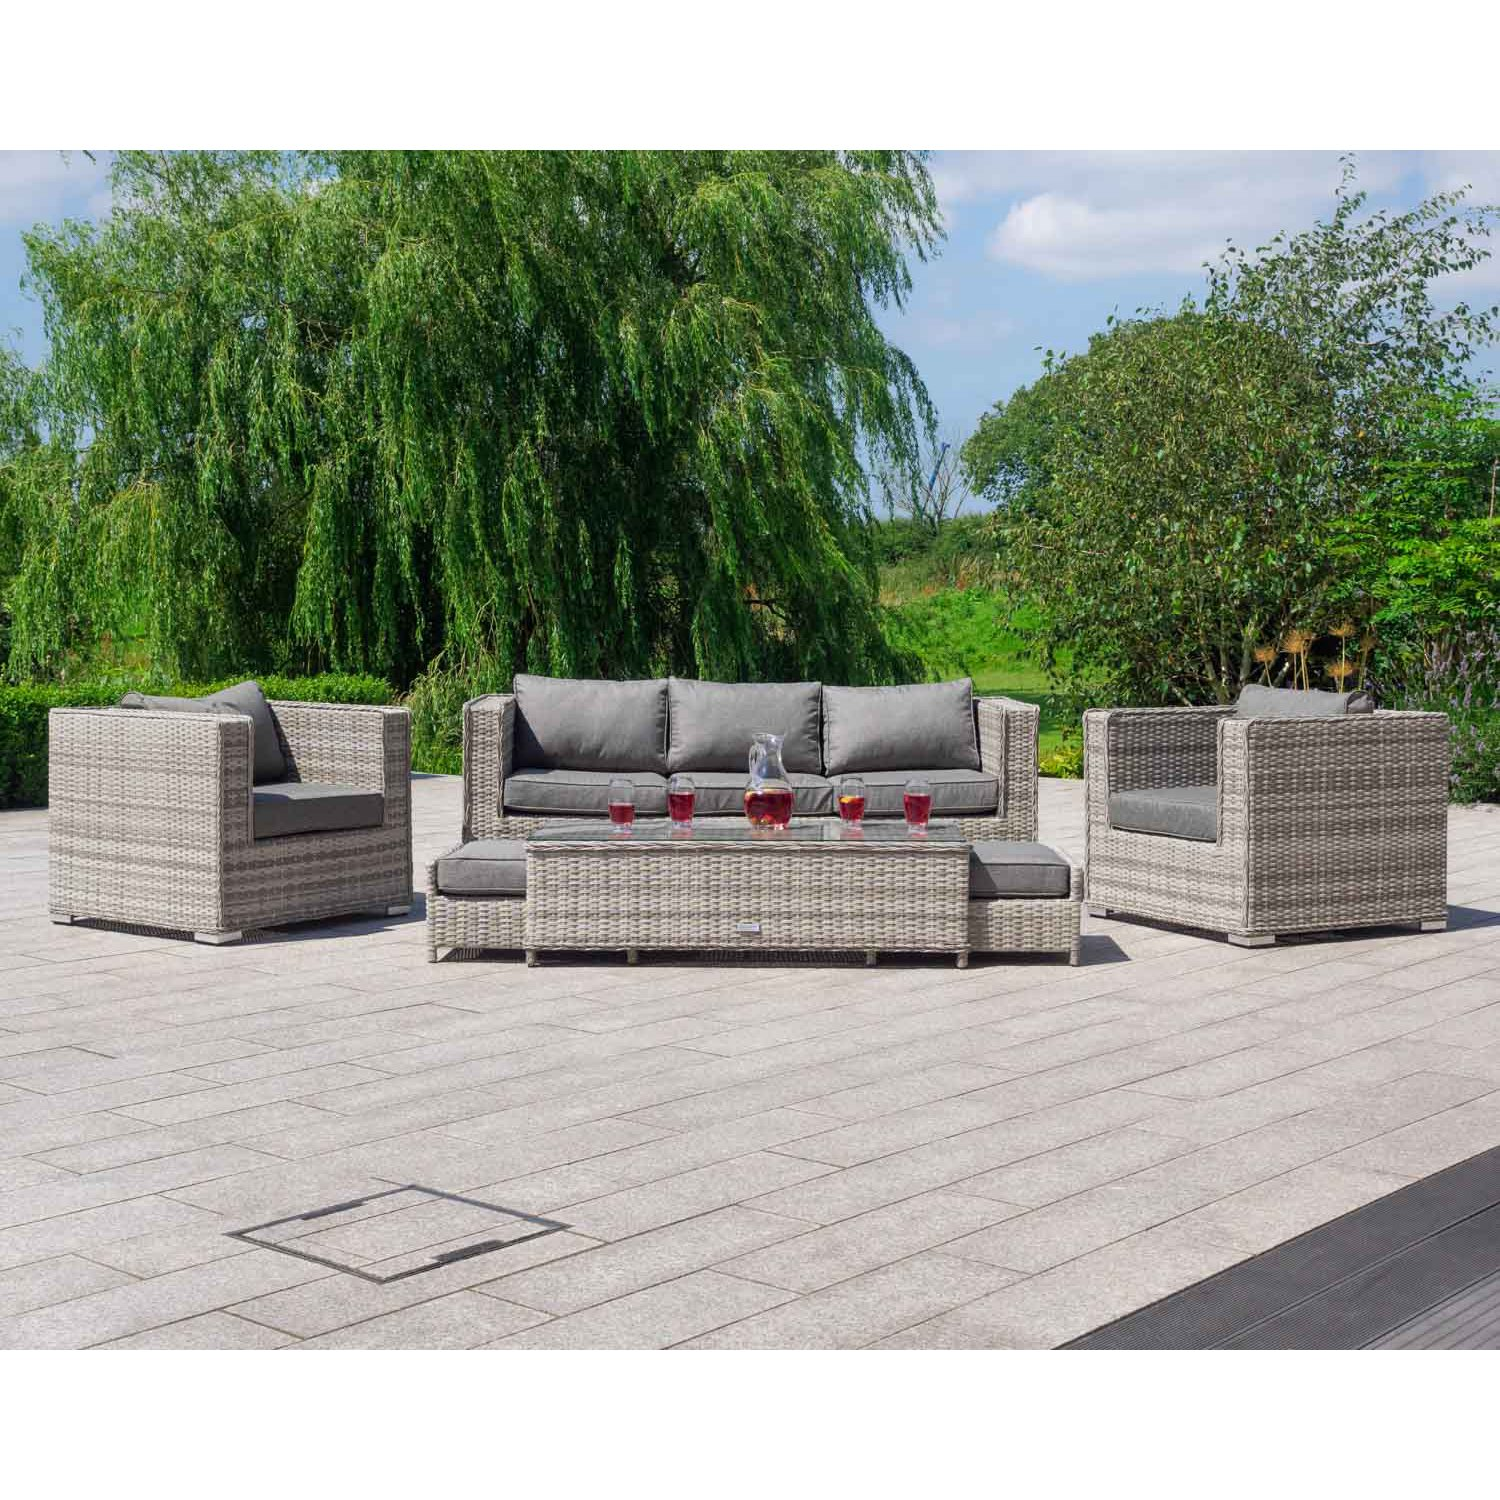 image-Ascot Rattan 3 Seat Garden Sofa Set in Grey